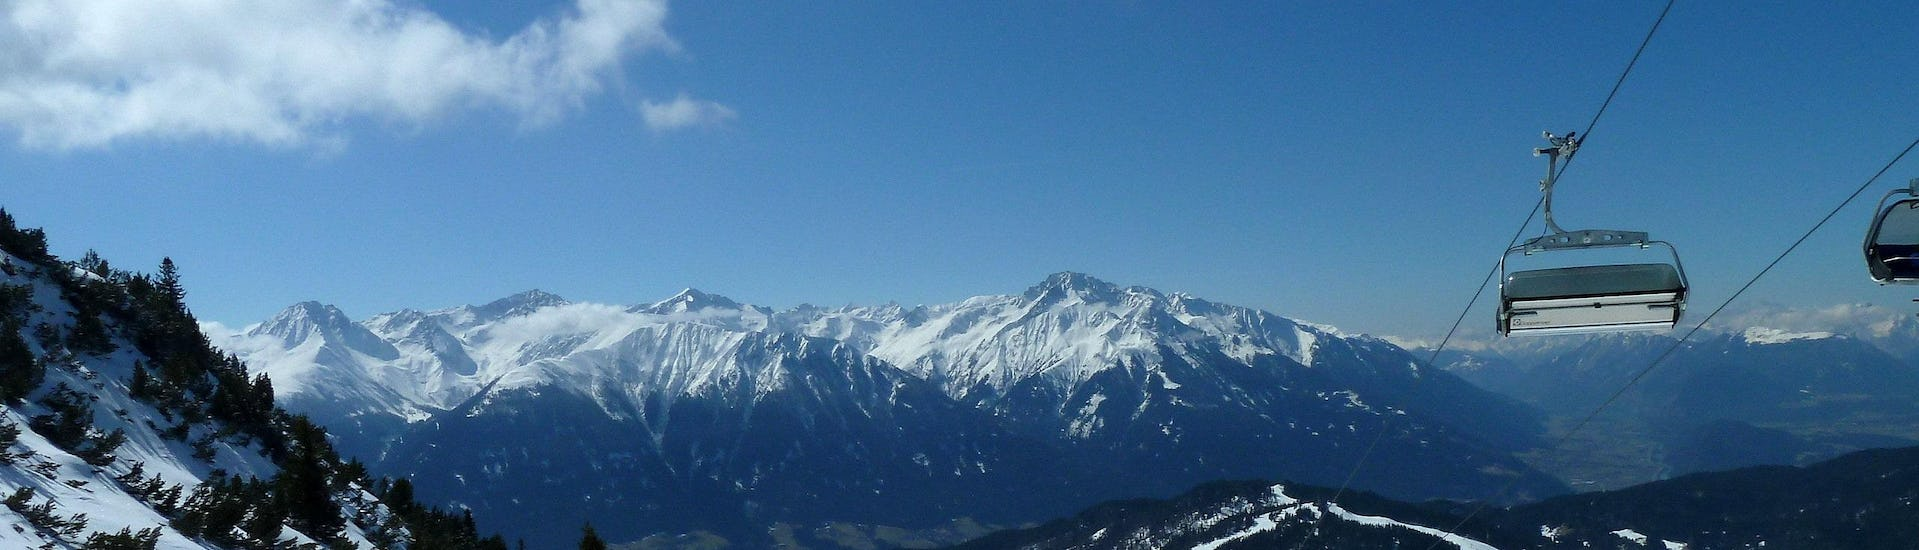 View over the sunny mountain landscape while learning to ski with the ski schools in Seefeld.